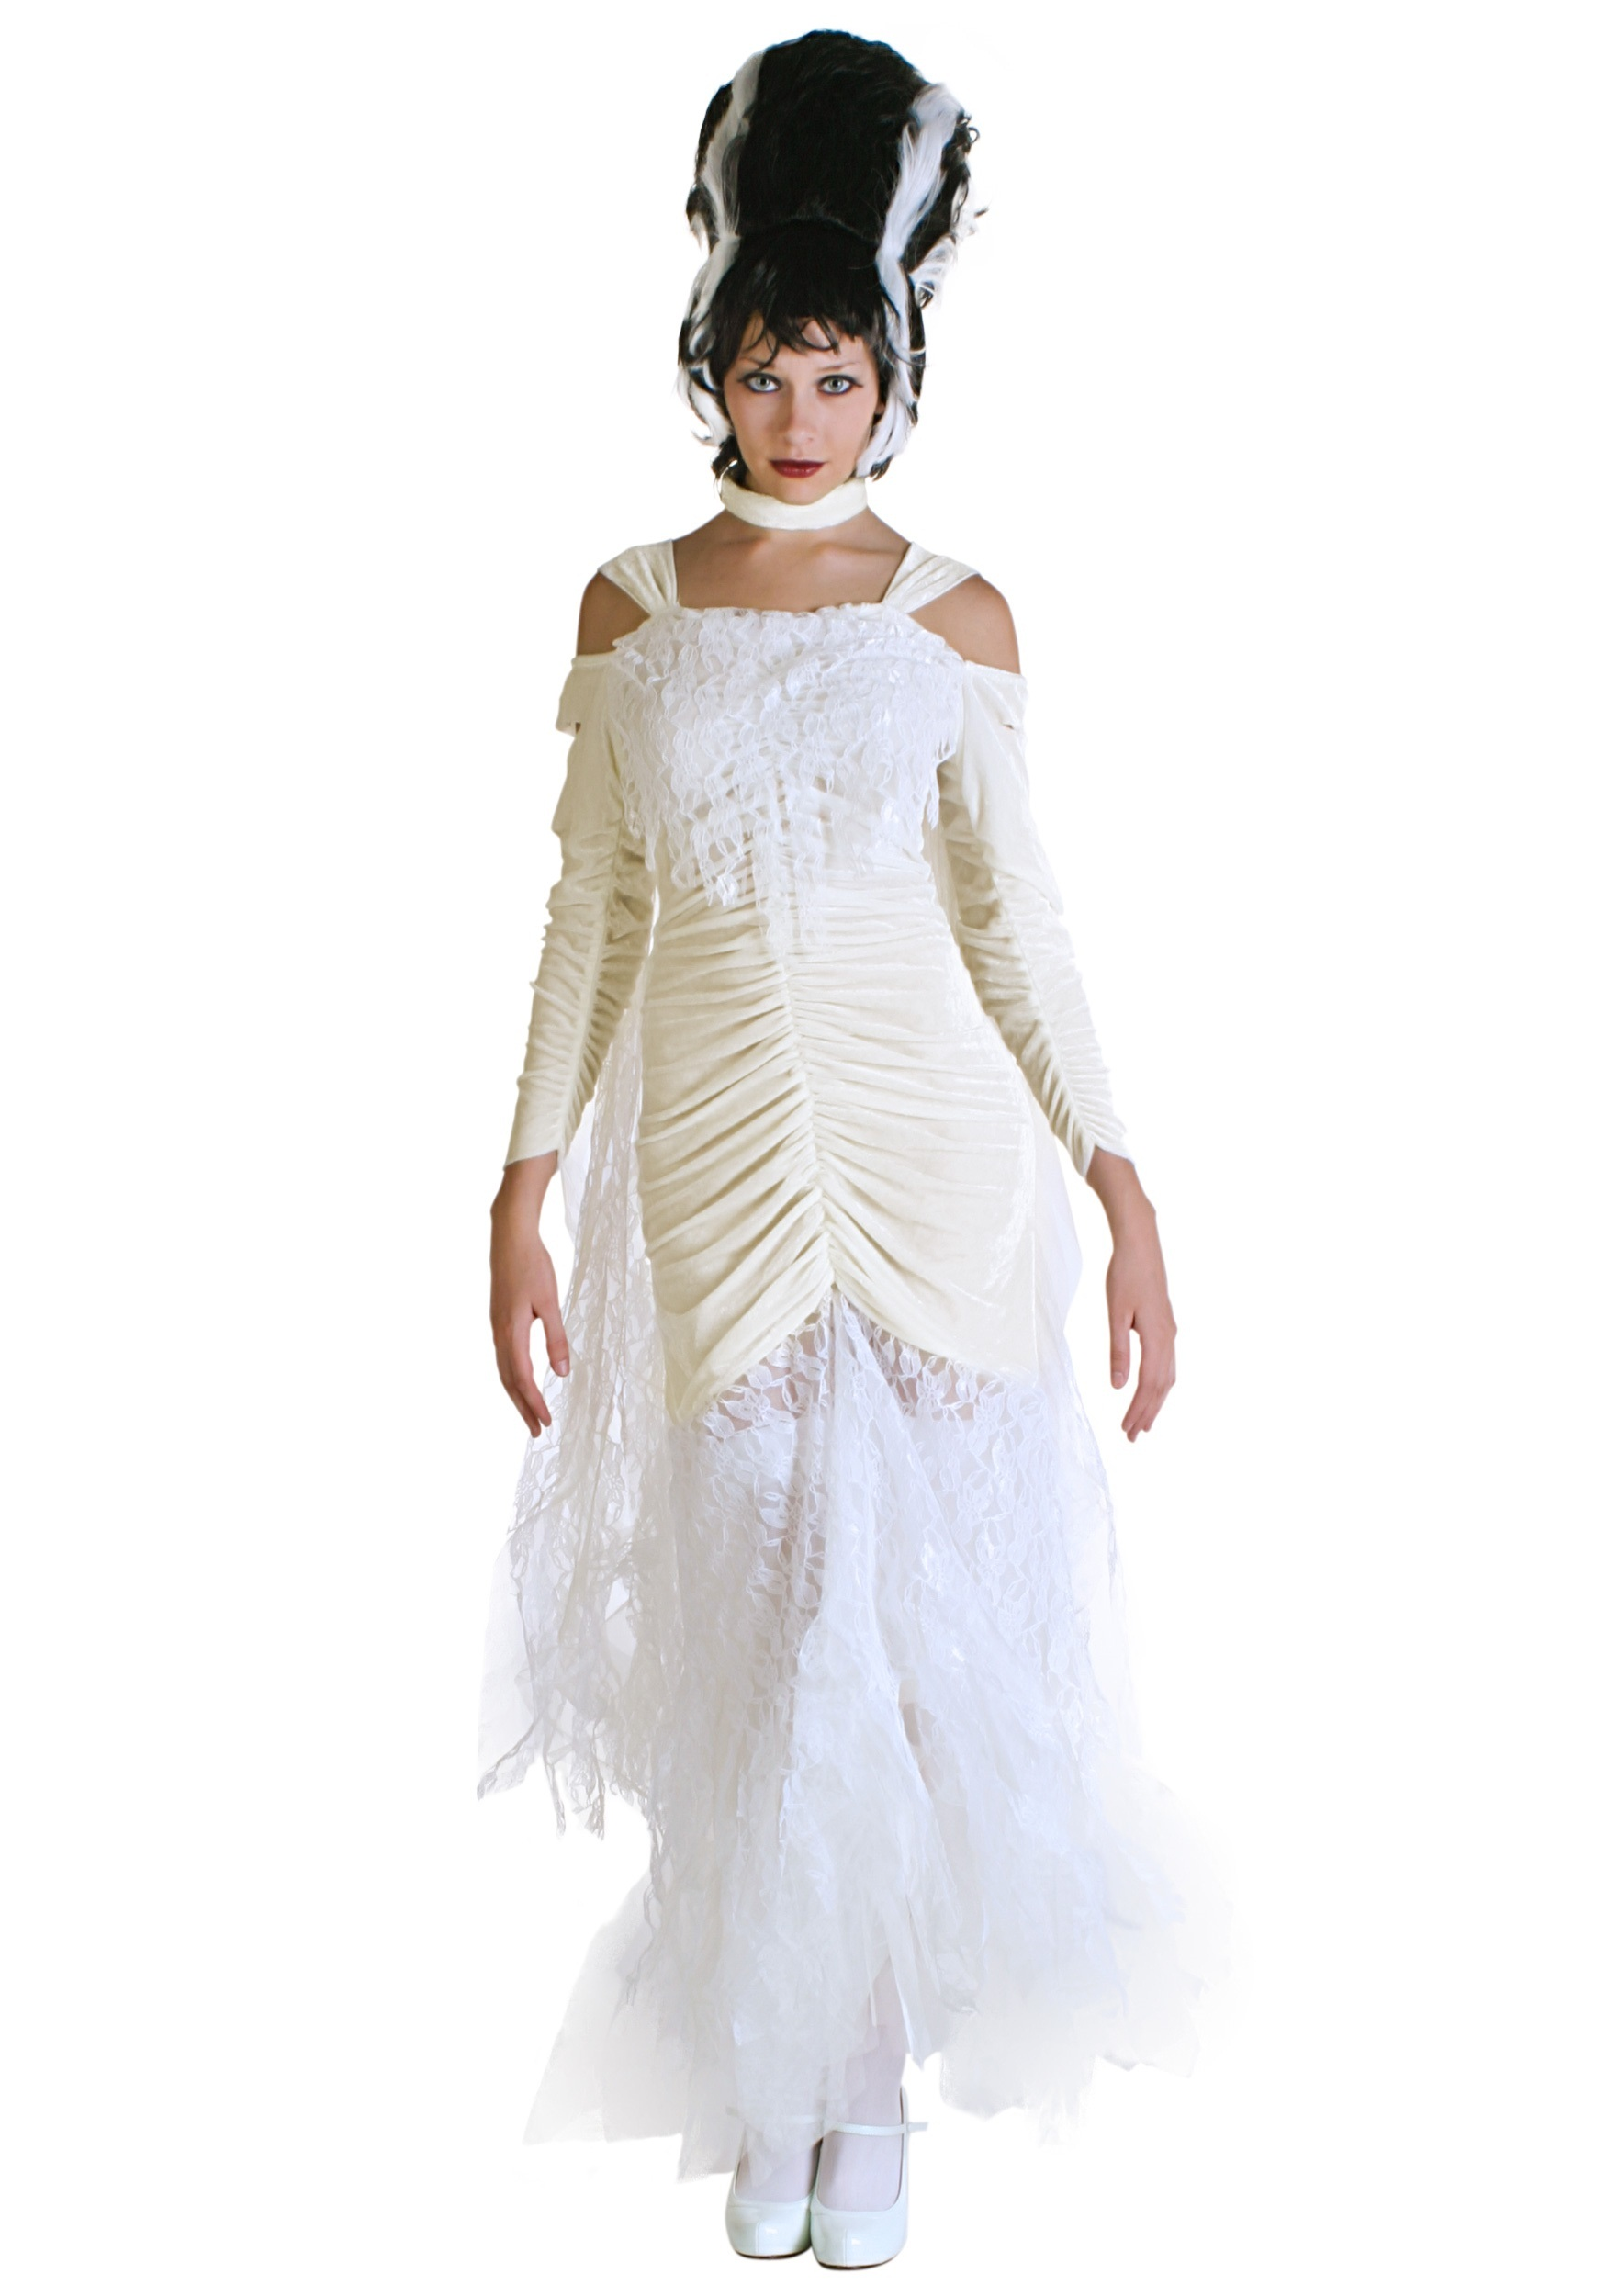 Plus Size Bride of Frankenstein Costume 1X 2X 3X 4X 5X